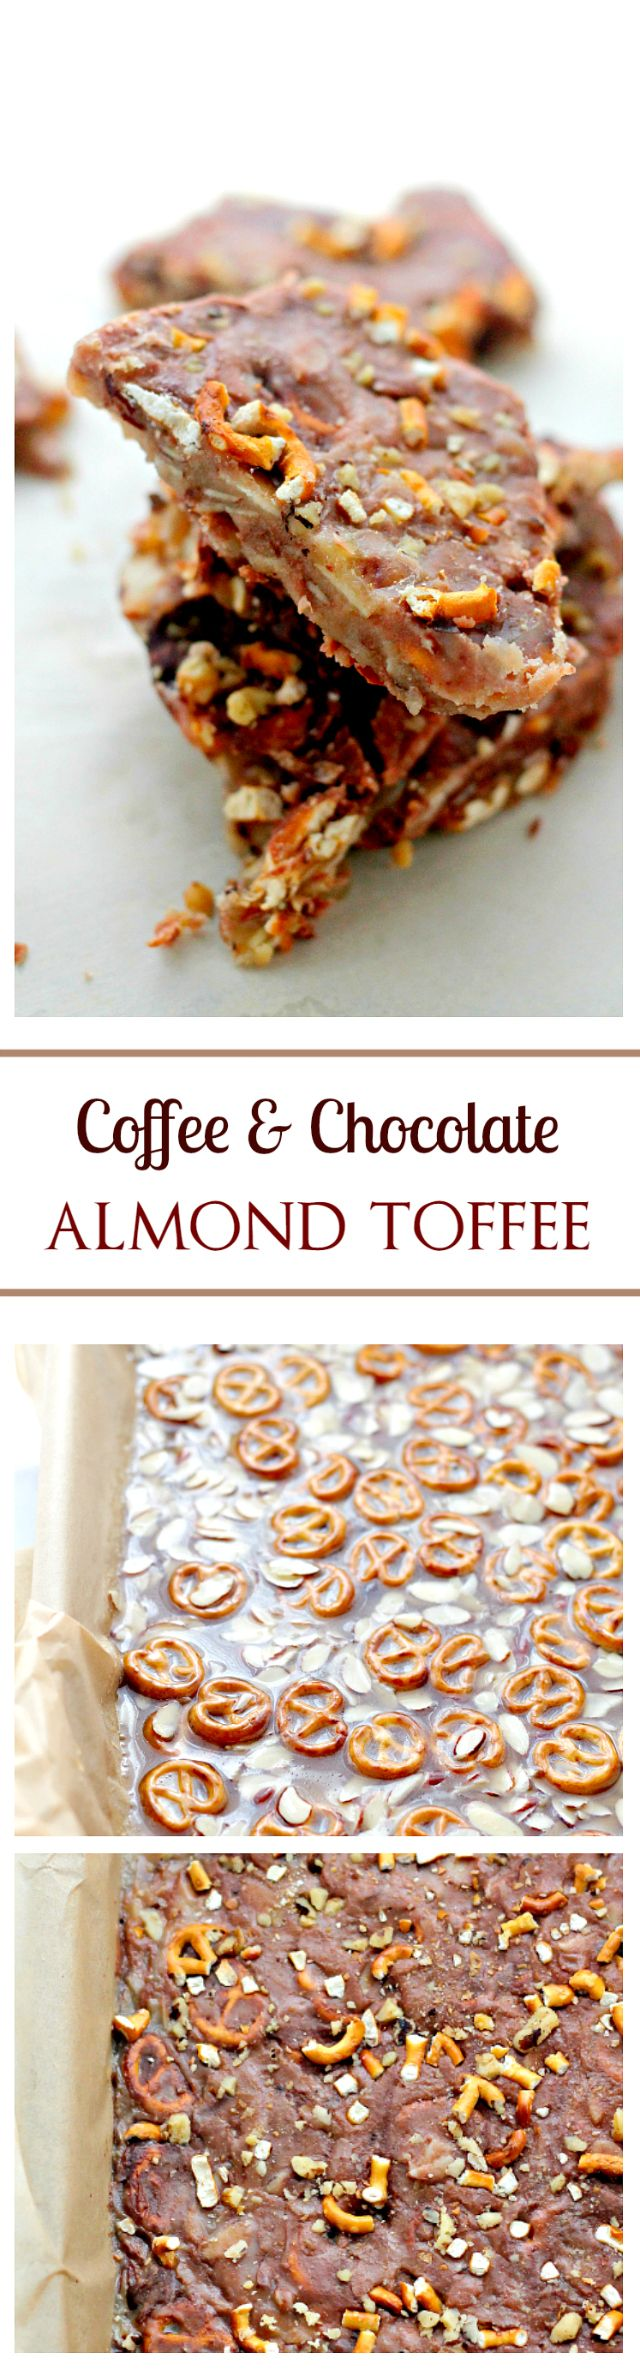 Coffee and Chocolate Almond Toffee | www.diethood.com | Quick and easy homemade Toffee with almonds, pretzels and coffee. No need for a Candy Thermometer!